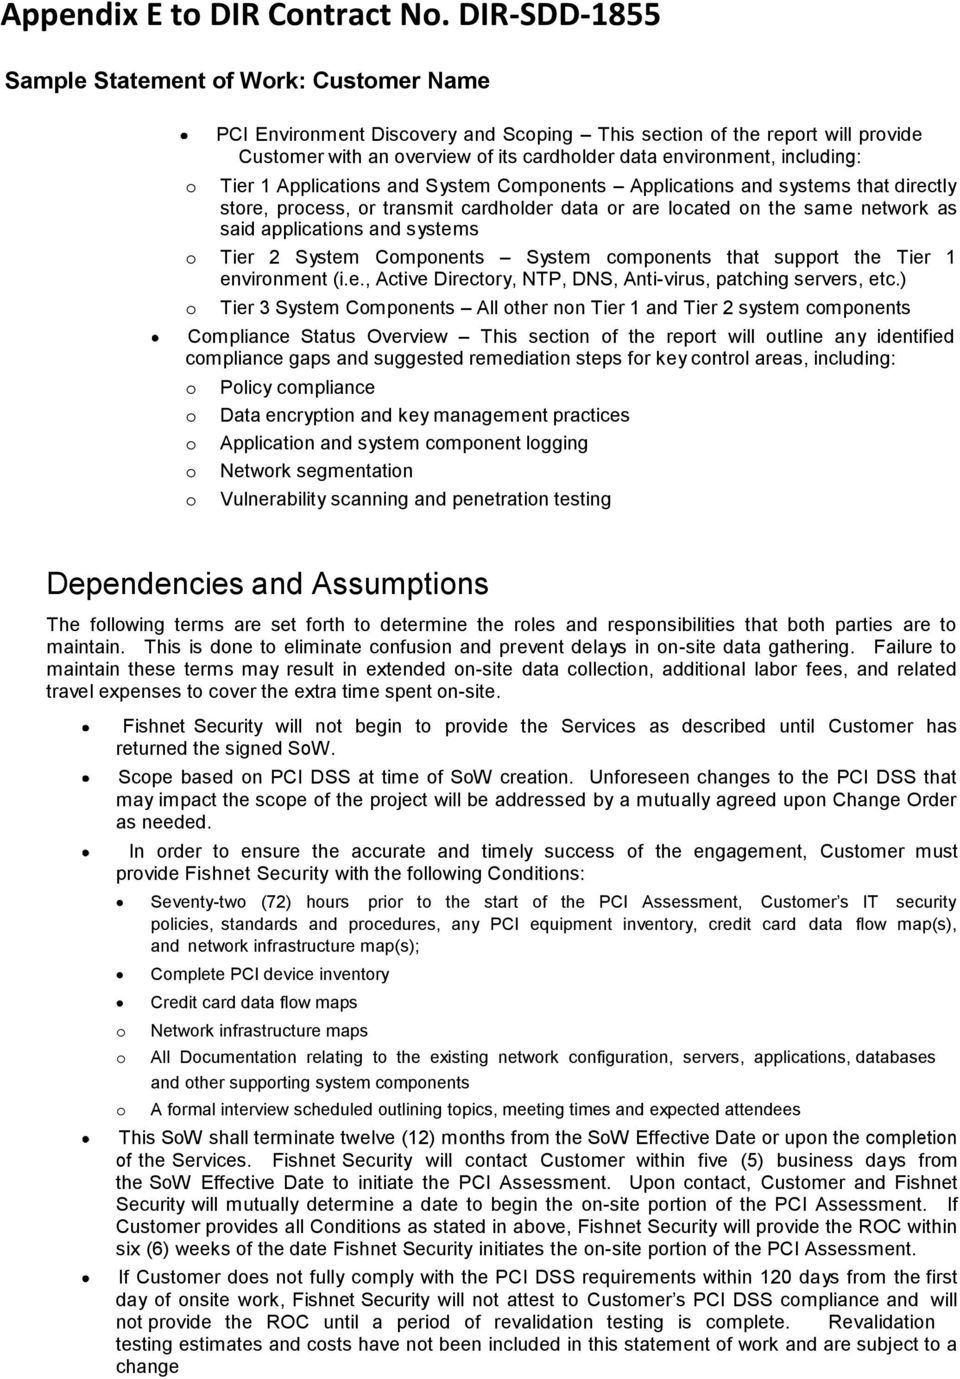 Sample Statement Of Work Pdf Free Download Within Pci Dss Gap Analysis Report Template Statement Of Work Report Template Professional Templates